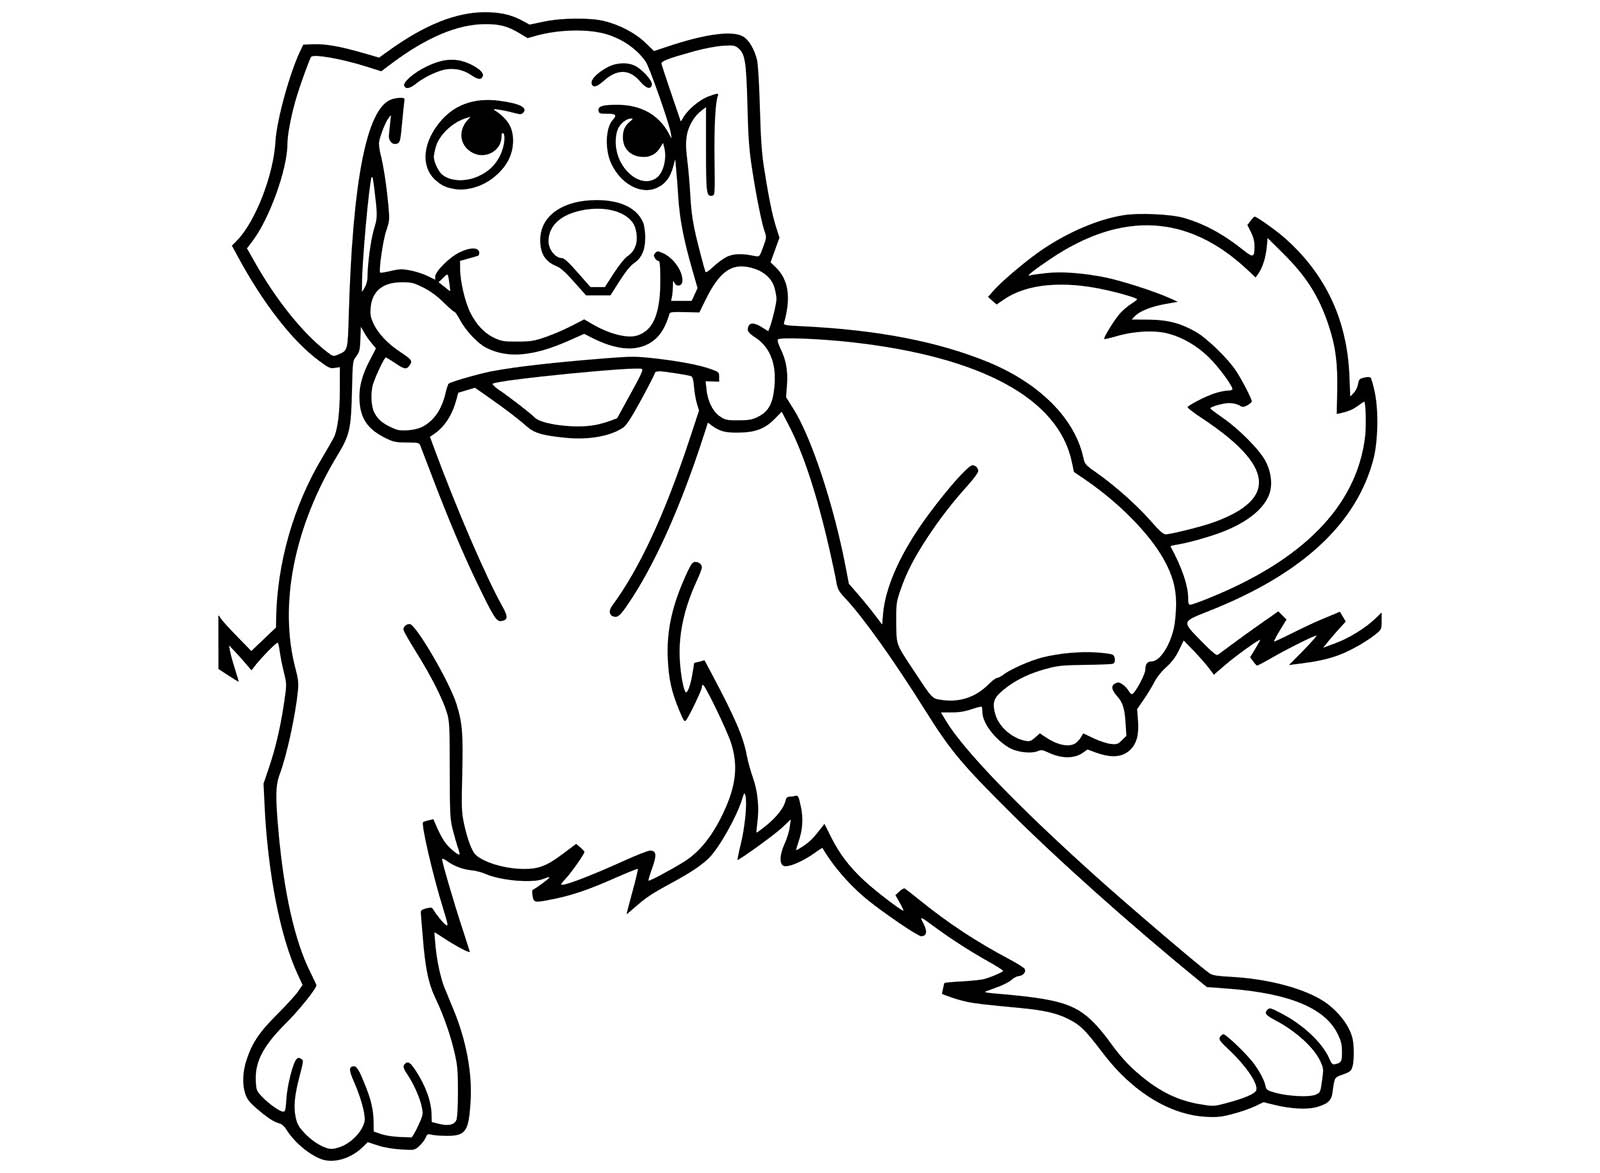 Excellent Coloriage Animaux 74 Pour Coloriage Pages with Coloriage Animaux